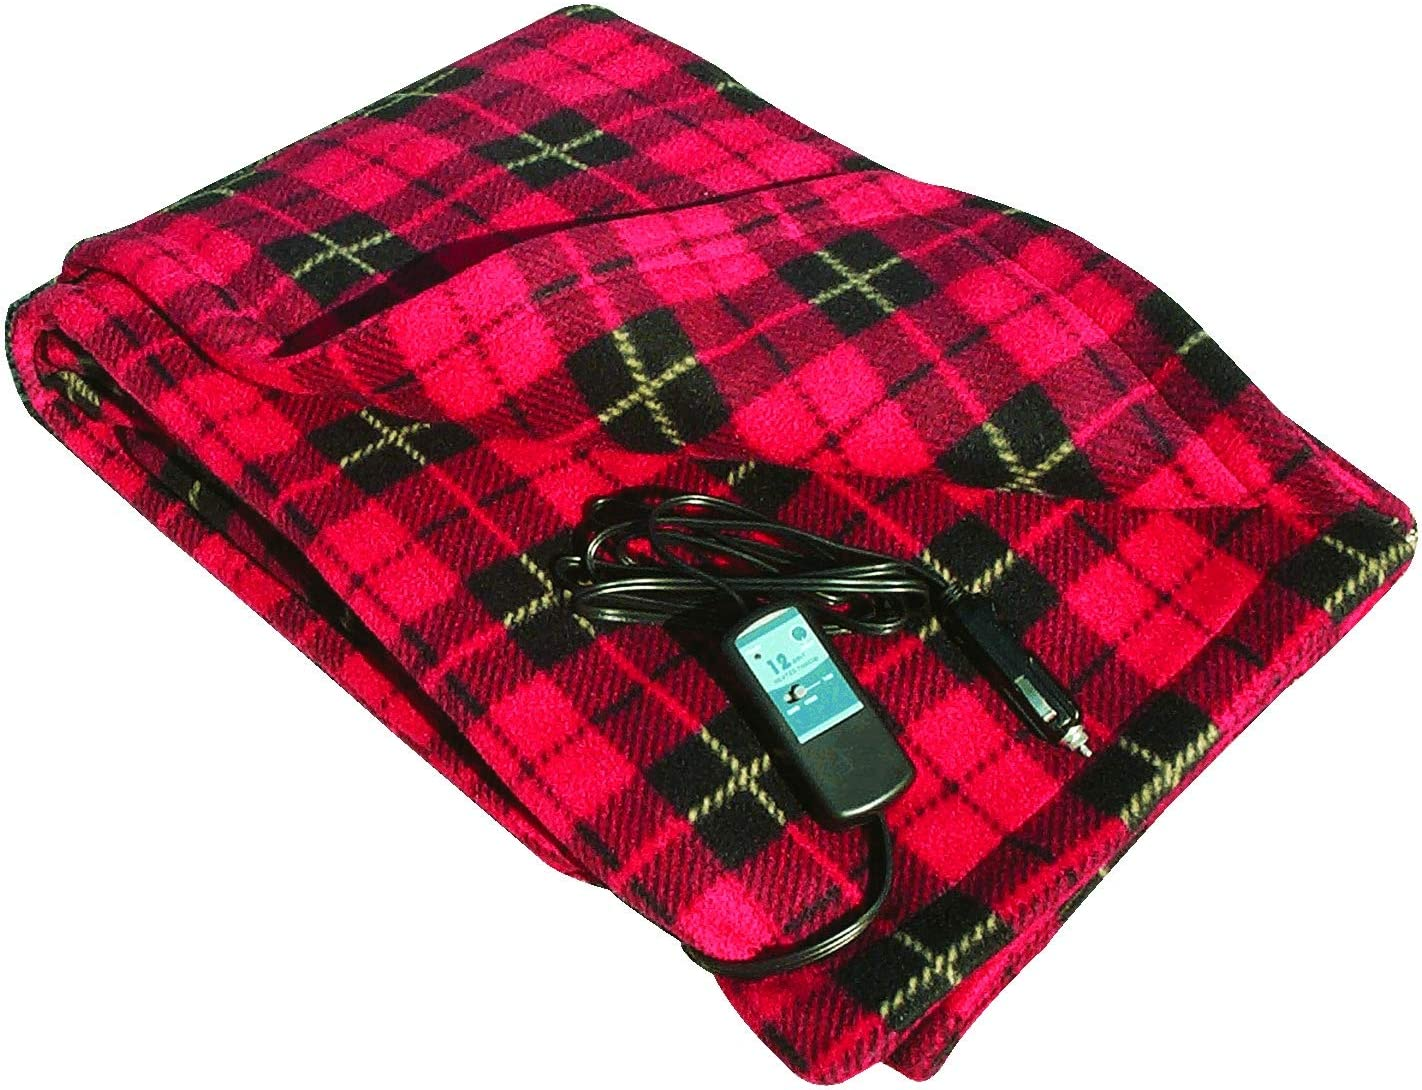 "Car Cozy 2 - 12-Volt Heated Travel Blanket (Red Plaid, 58"" x 42"") with Patented Safety Timer by Trillium Worldwide"